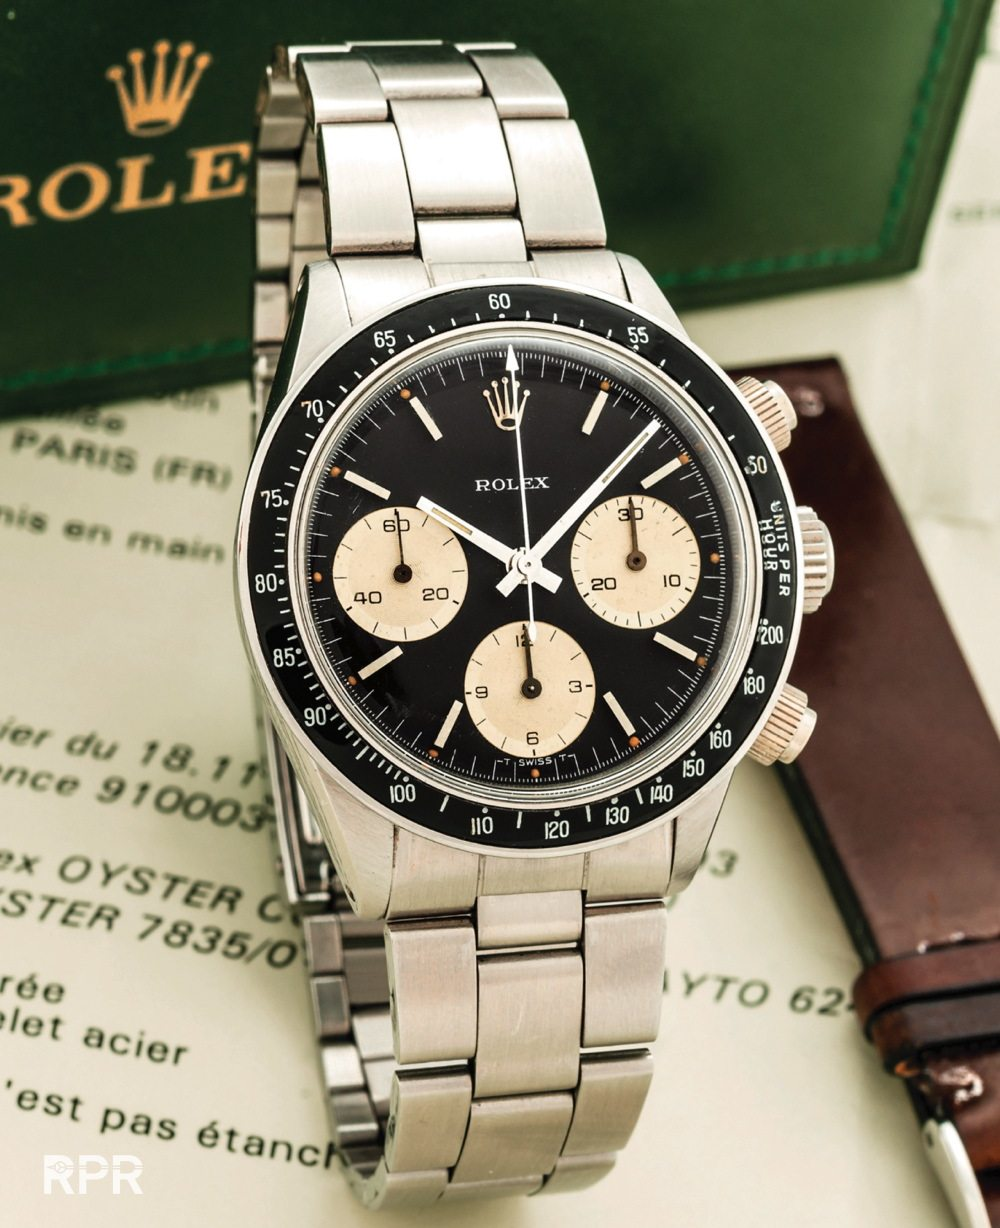 RPR_Rolex_geneva_auction_2015_143